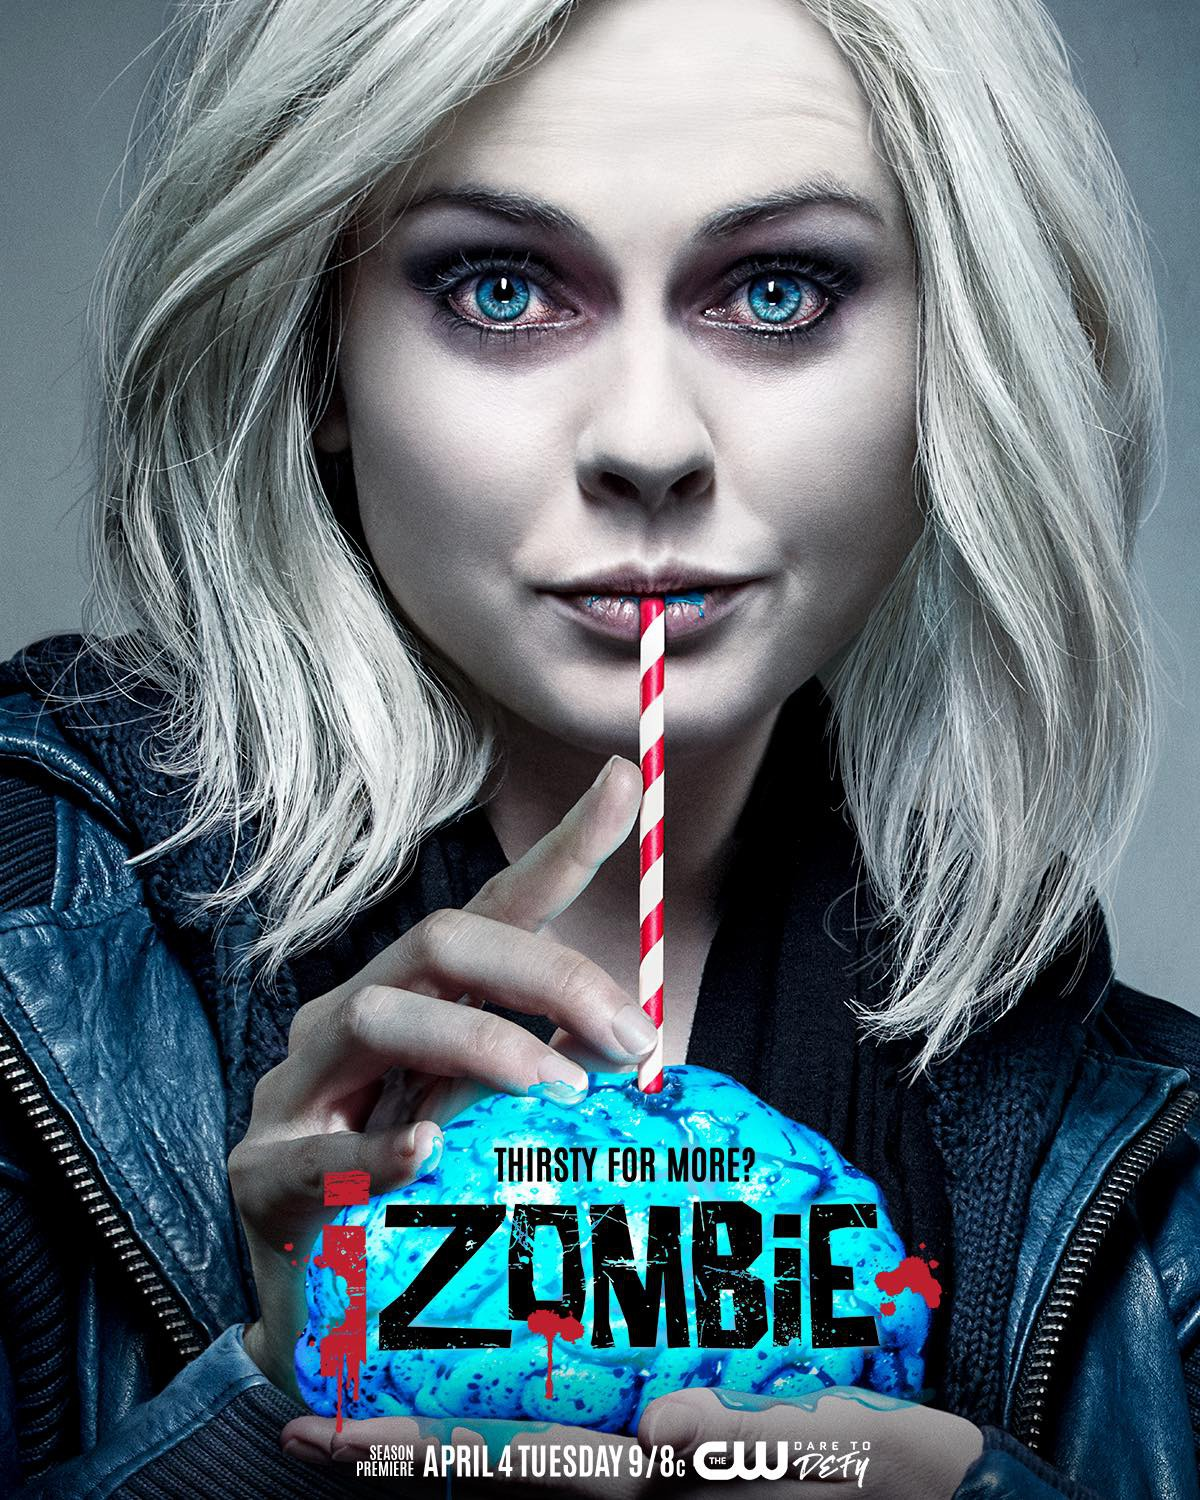 Season 3 2017 Ep 13 123movies To: IZombie Saison 3